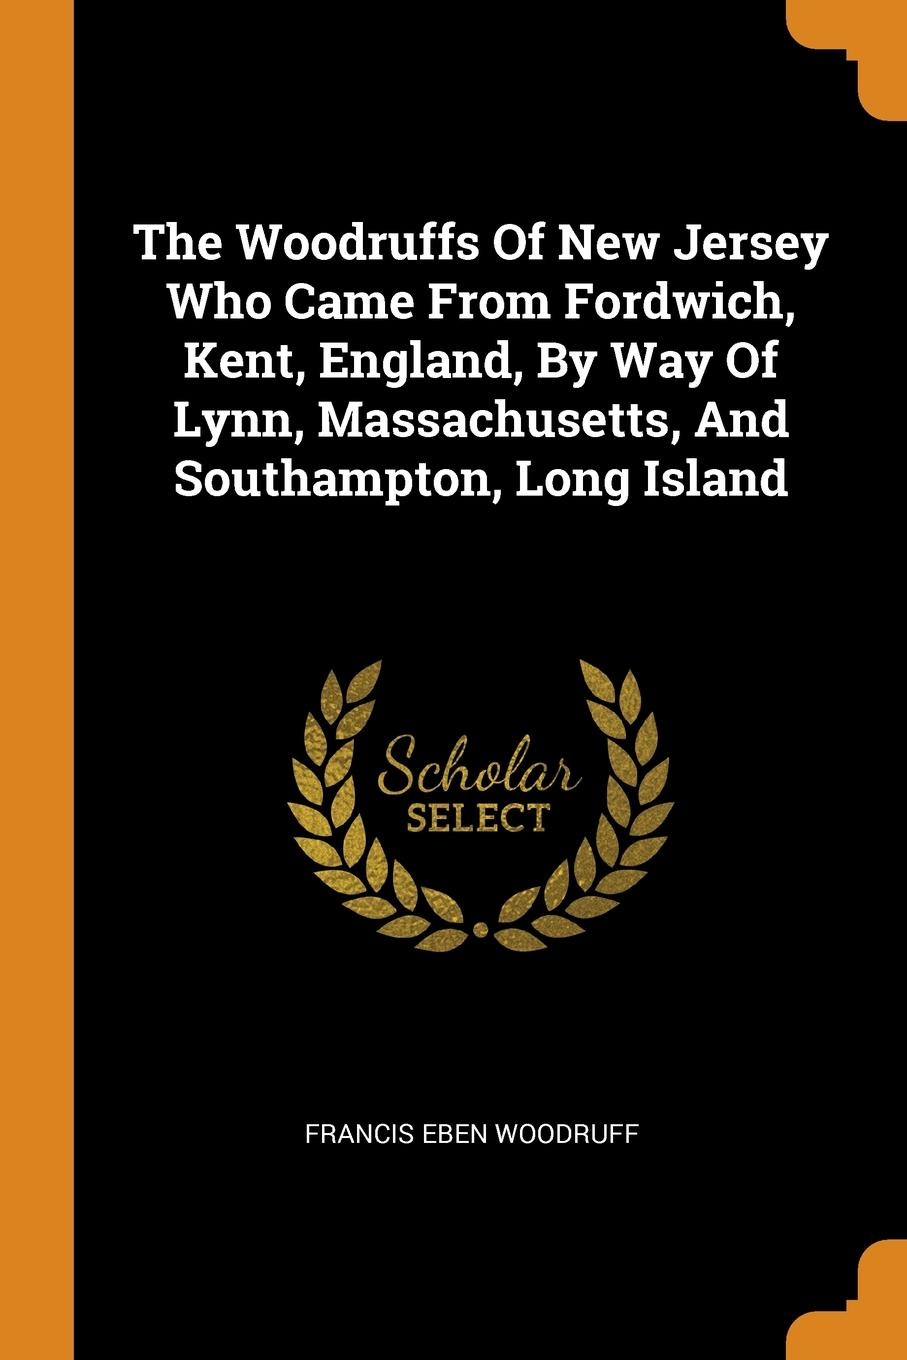 Francis Eben Woodruff The Woodruffs Of New Jersey Who Came From Fordwich, Kent, England, By Way Of Lynn, Massachusetts, And Southampton, Long Island